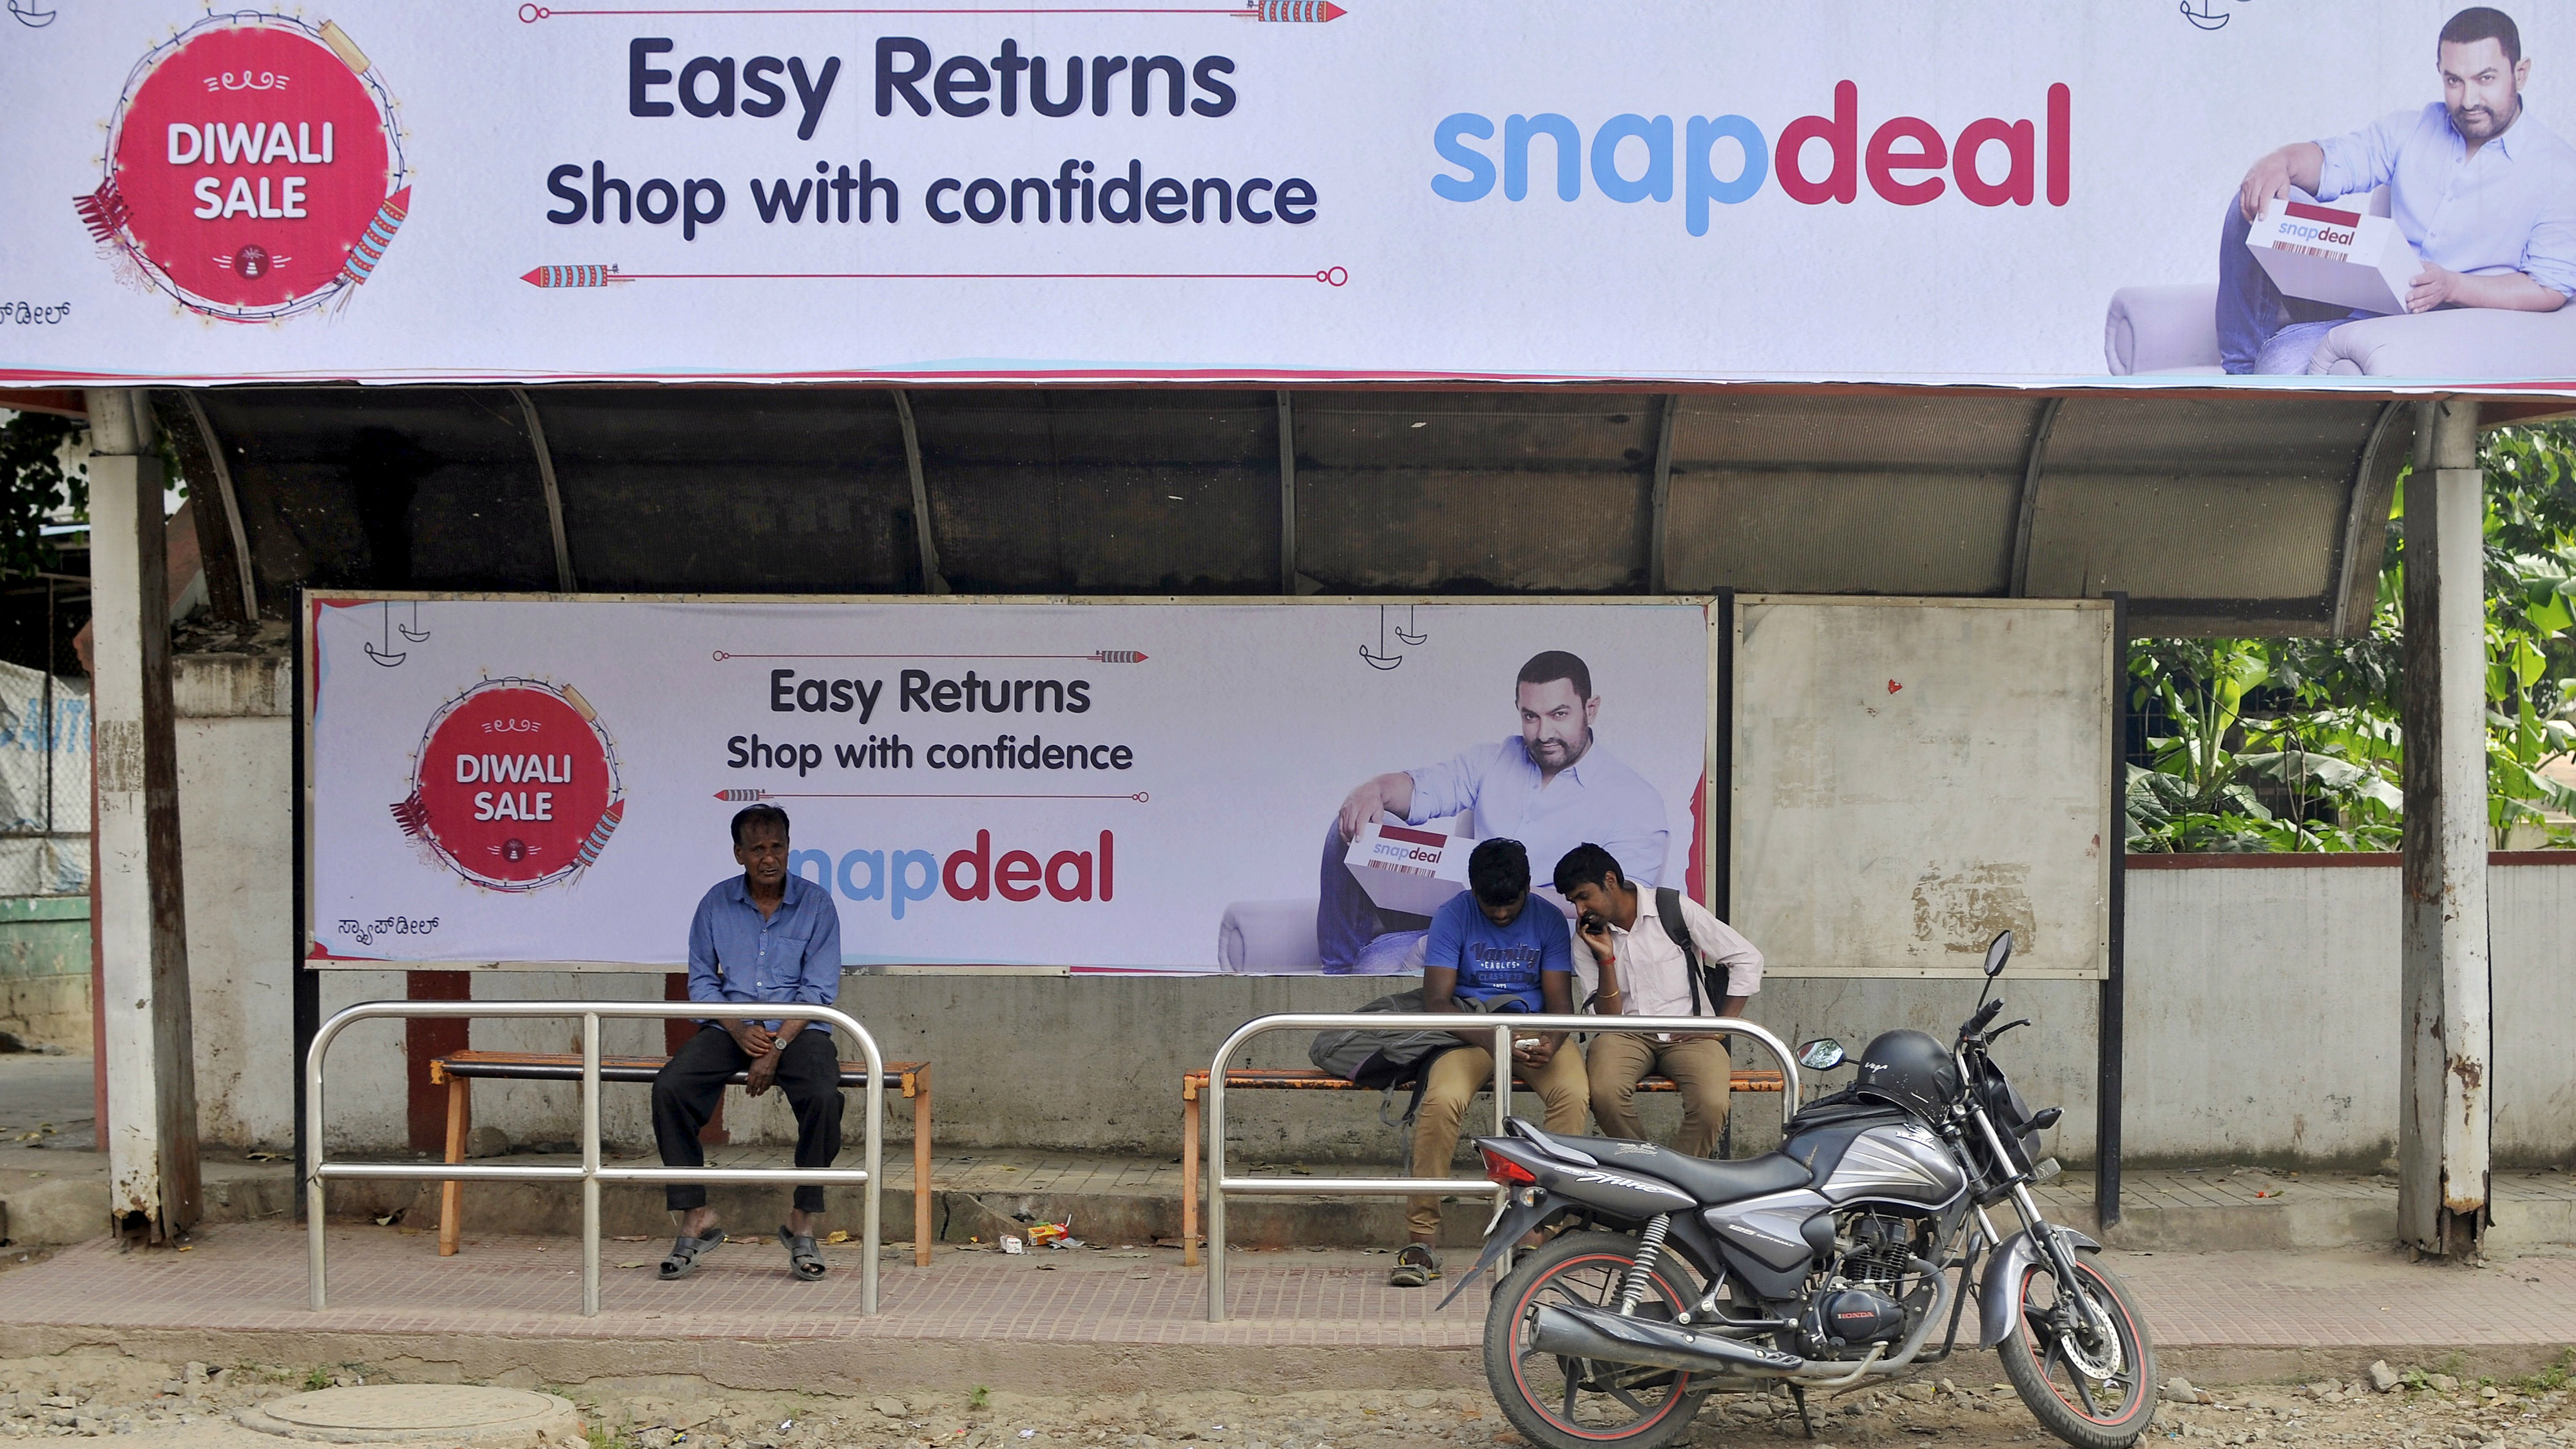 Commuters sit at a bus stop adorned with an advertisement of Indian online marketplace Snapdeal featuring Bollywood actor Aamir Khan, in Bengaluru, India, October 15, 2015. Amazon.com could emerge as the biggest winner from one of India's most important festive - and shopping - seasons that began this week, after the e-tailer offered steep discounts, swift delivery and even gold bars to grab market share. The month-long festive season culminates around November 10 in Diwali, or the Festival of Lights, but the first nine days are considered an especially auspicious time to make big purchases. Analysts say e-commerce firms in India could make as much as a quarter of their annual sales during this period, with the global experience, logistics network and deep pockets of Amazon putting it in a good position to grab customers from local market leader Flipkart and smaller firm Snapdeal. Picture taken October 15. REUTERS/Abhishek Chinnappa